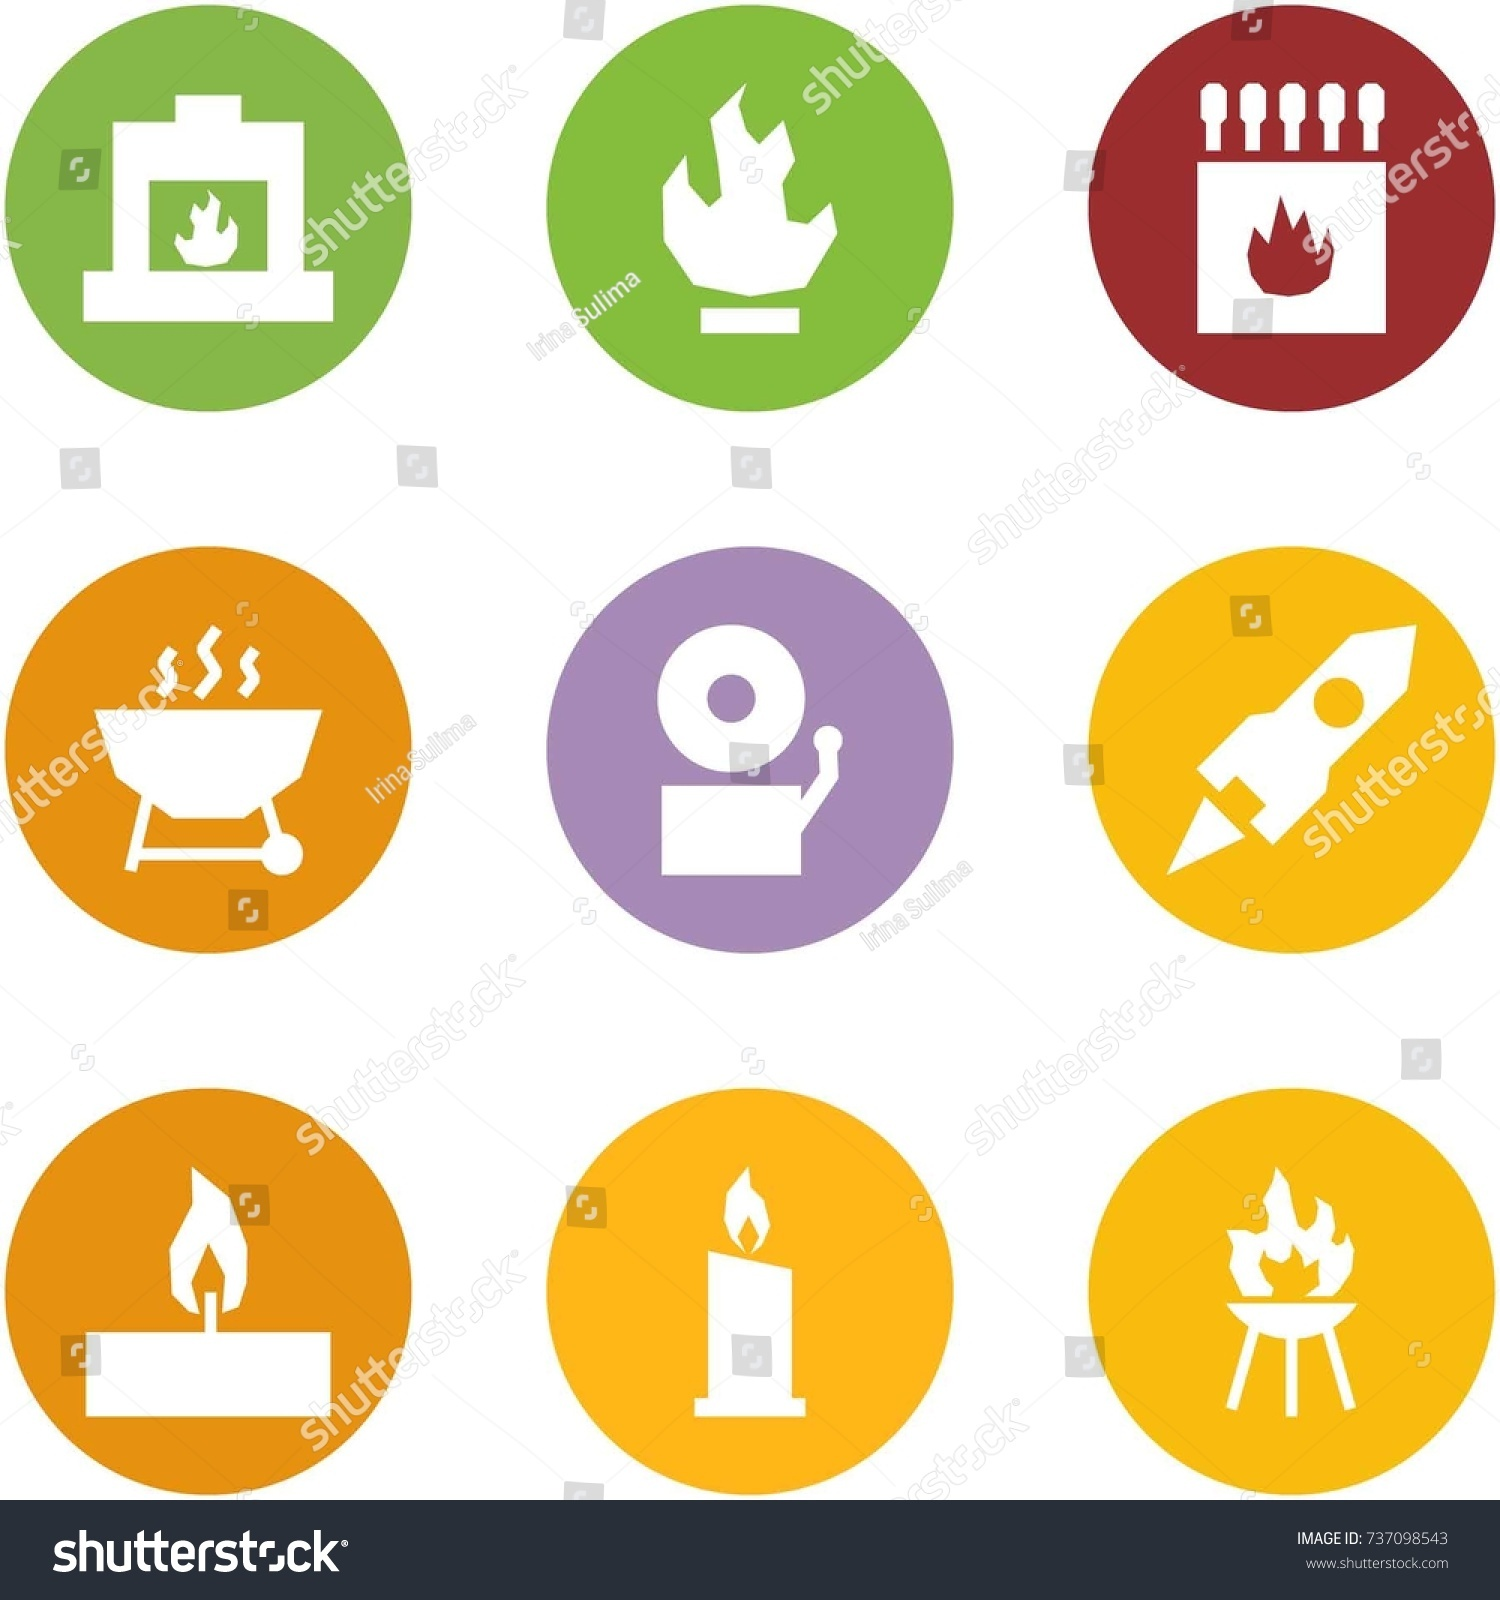 origami corner style icon set fireplace stock vector 737098543